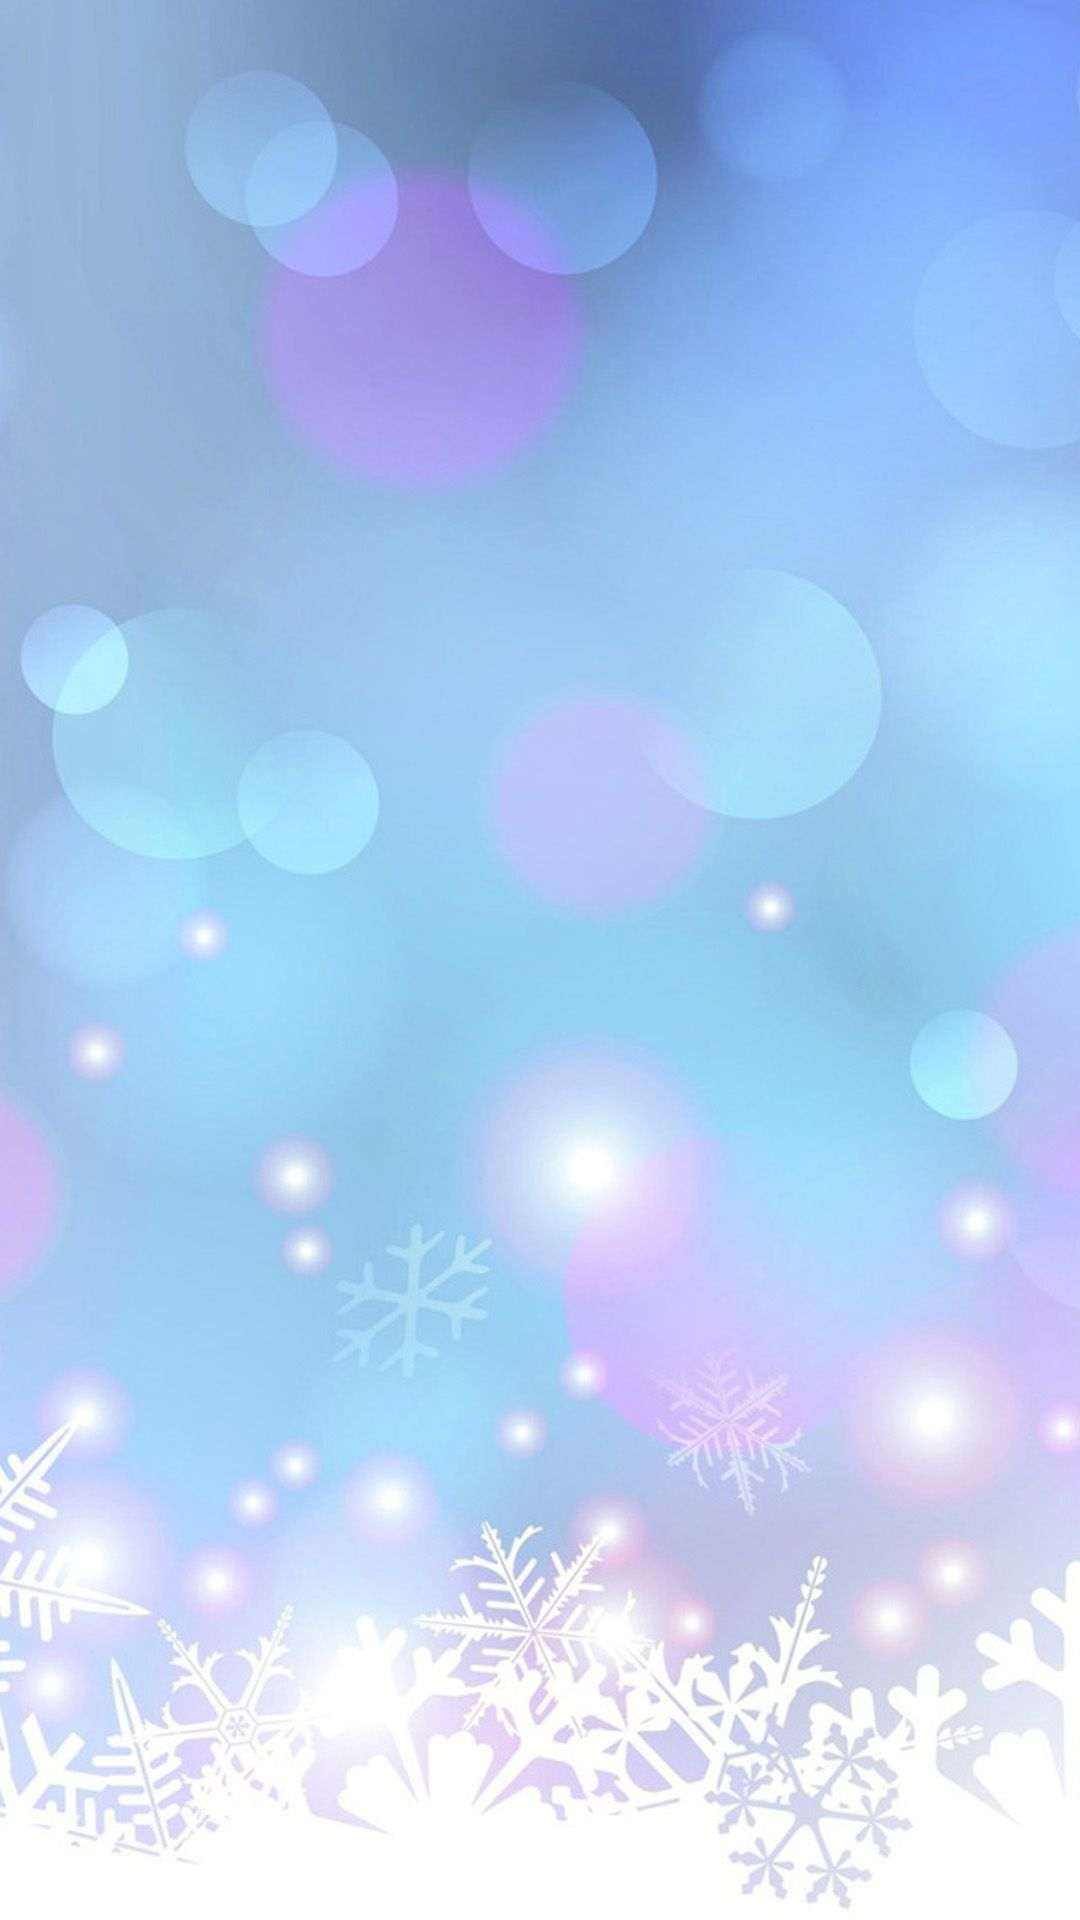 Snow Dream Wallpaper Iphone Wallpaper Wallpaper Iphone Christmas Winter Wallpaper Christmas Wallpaper